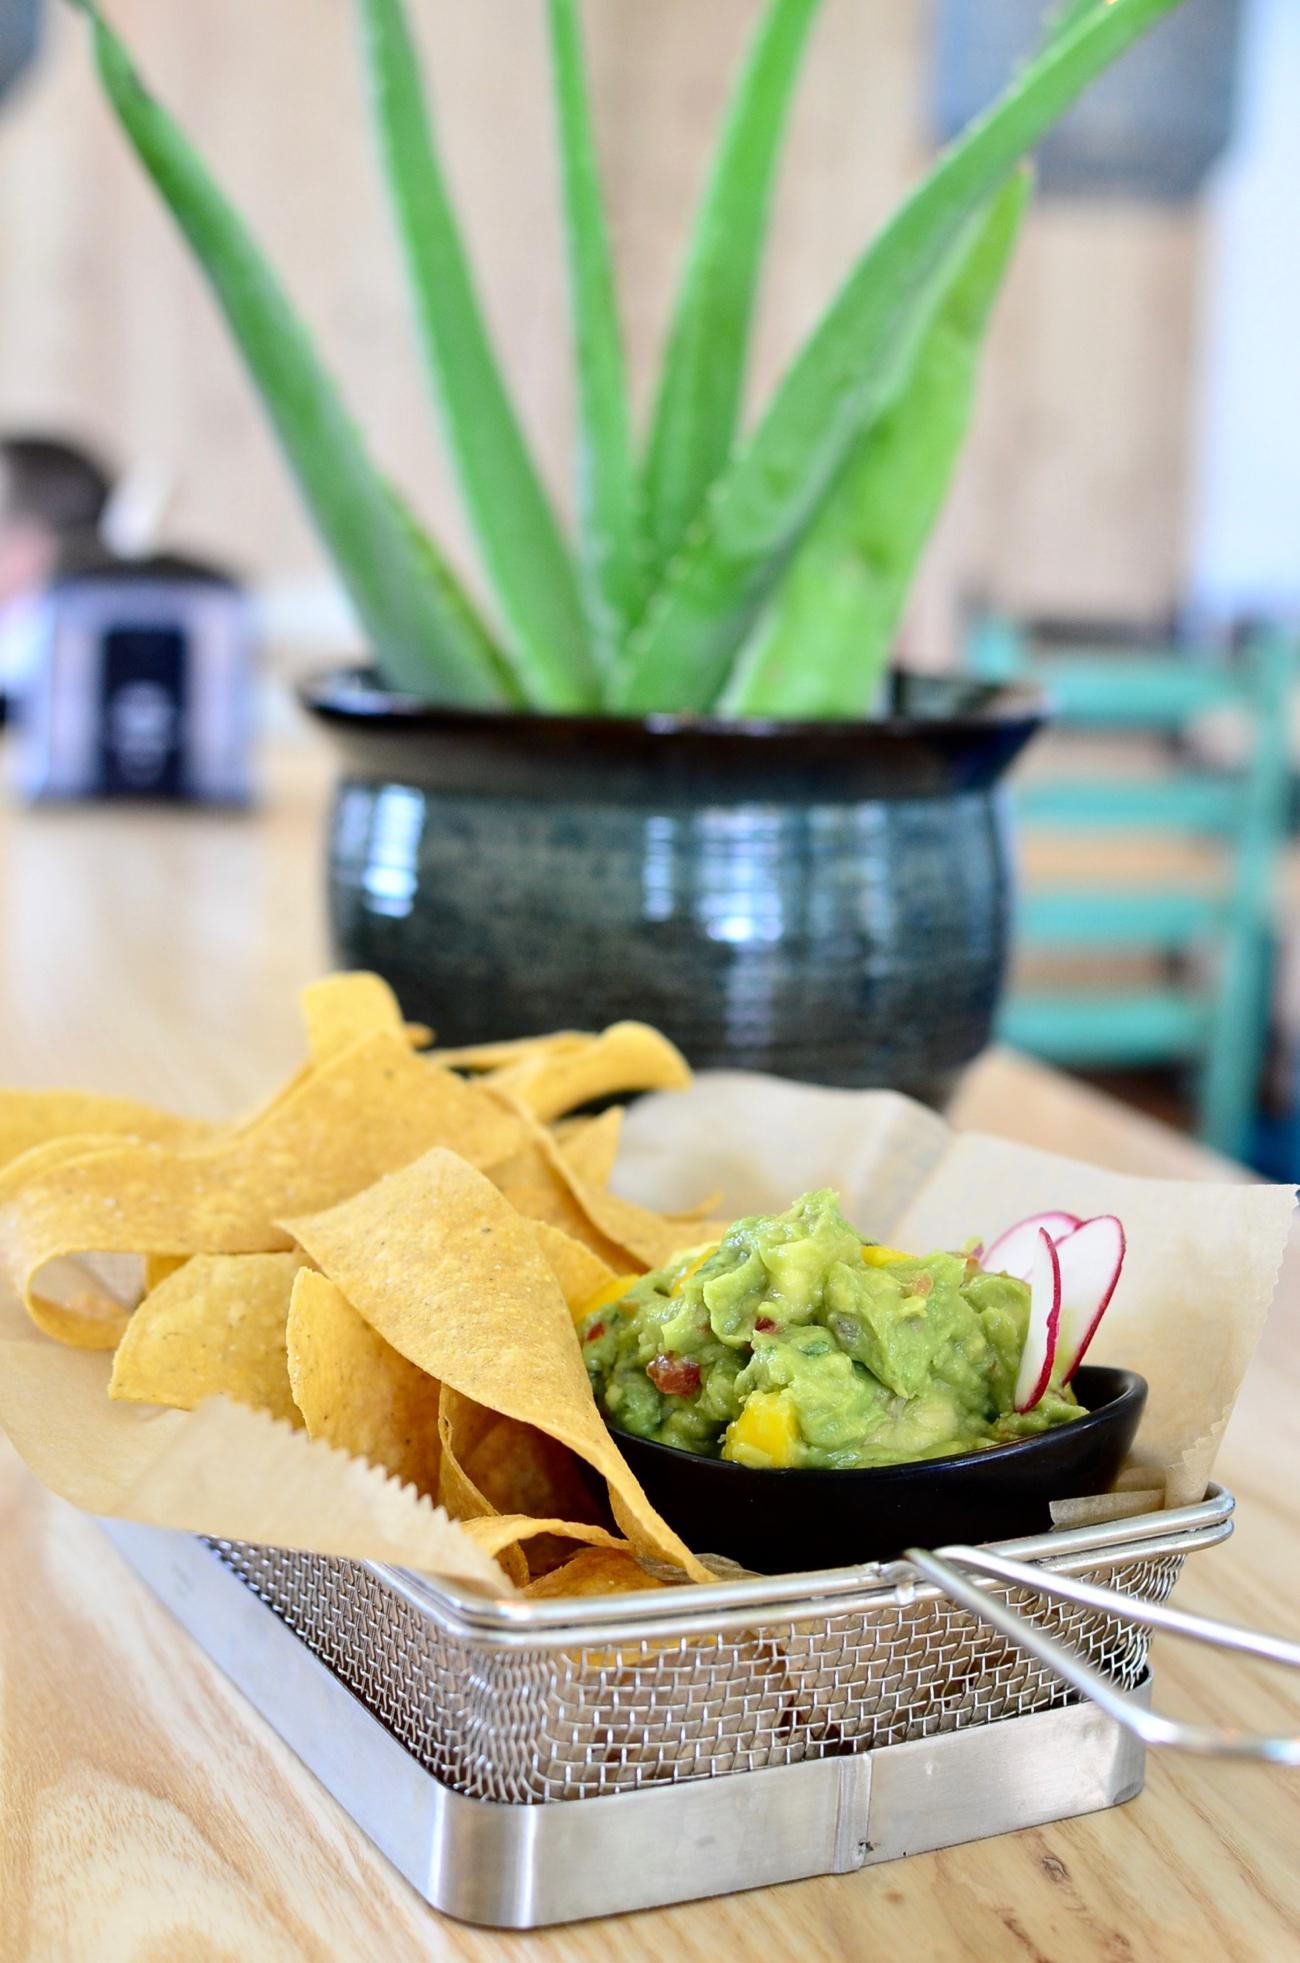 Tahona Guacamole: avocado, tomato, cilantro, red onion, jalapeño, fresh lime juice, fresh tortilla chips / Image: Leah Zipperstein, Cincinnati Refined // Published: 5.13.17